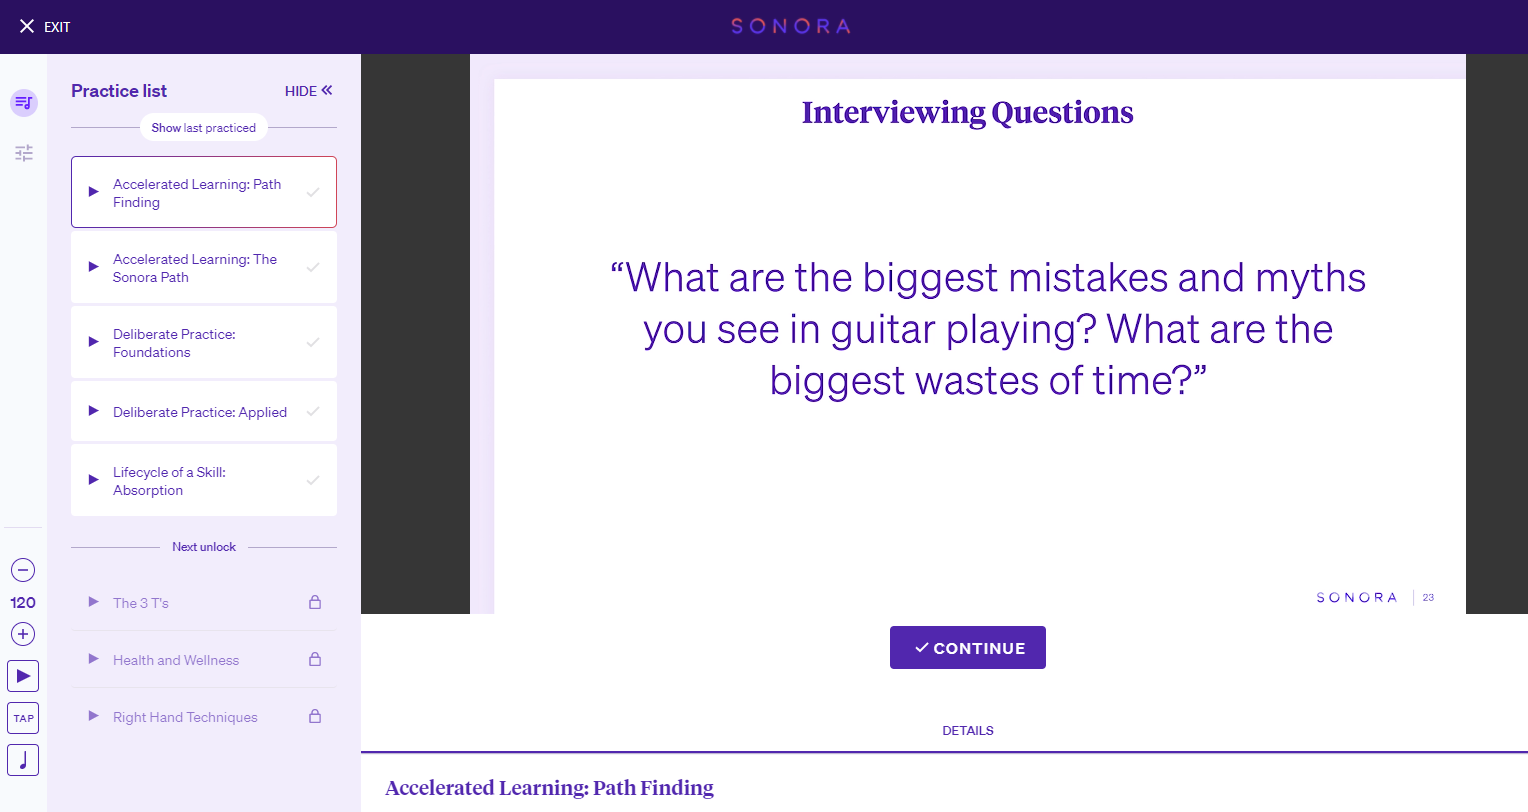 Interviewing Questions